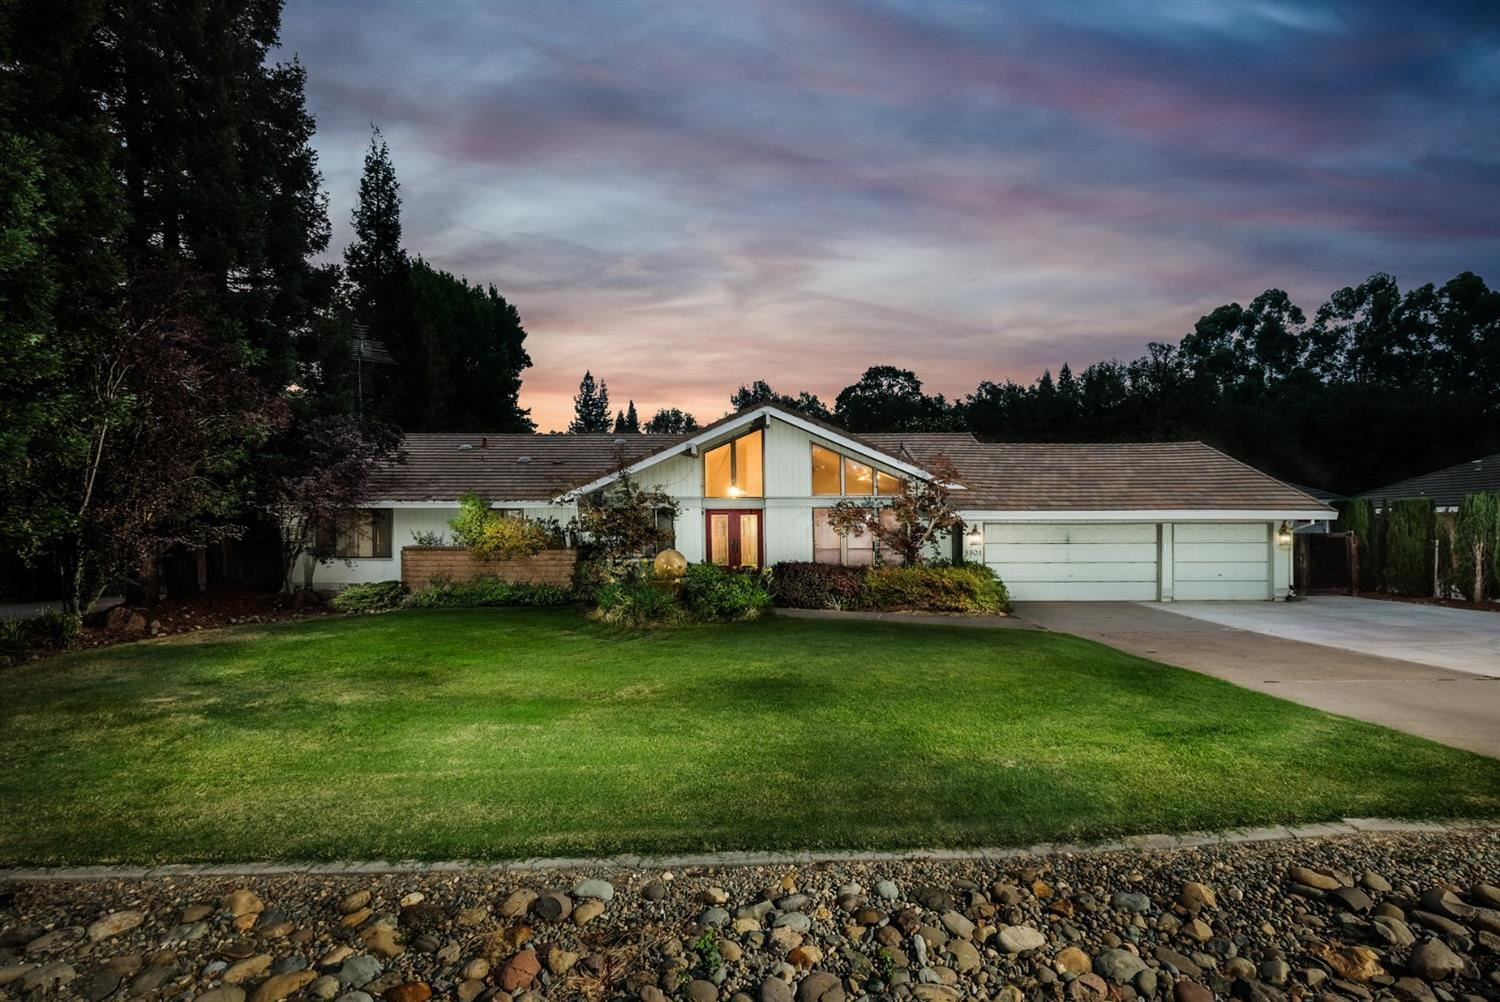 8801 Country Creek Drive, Orangevale, CA 95662 - #: 20054841